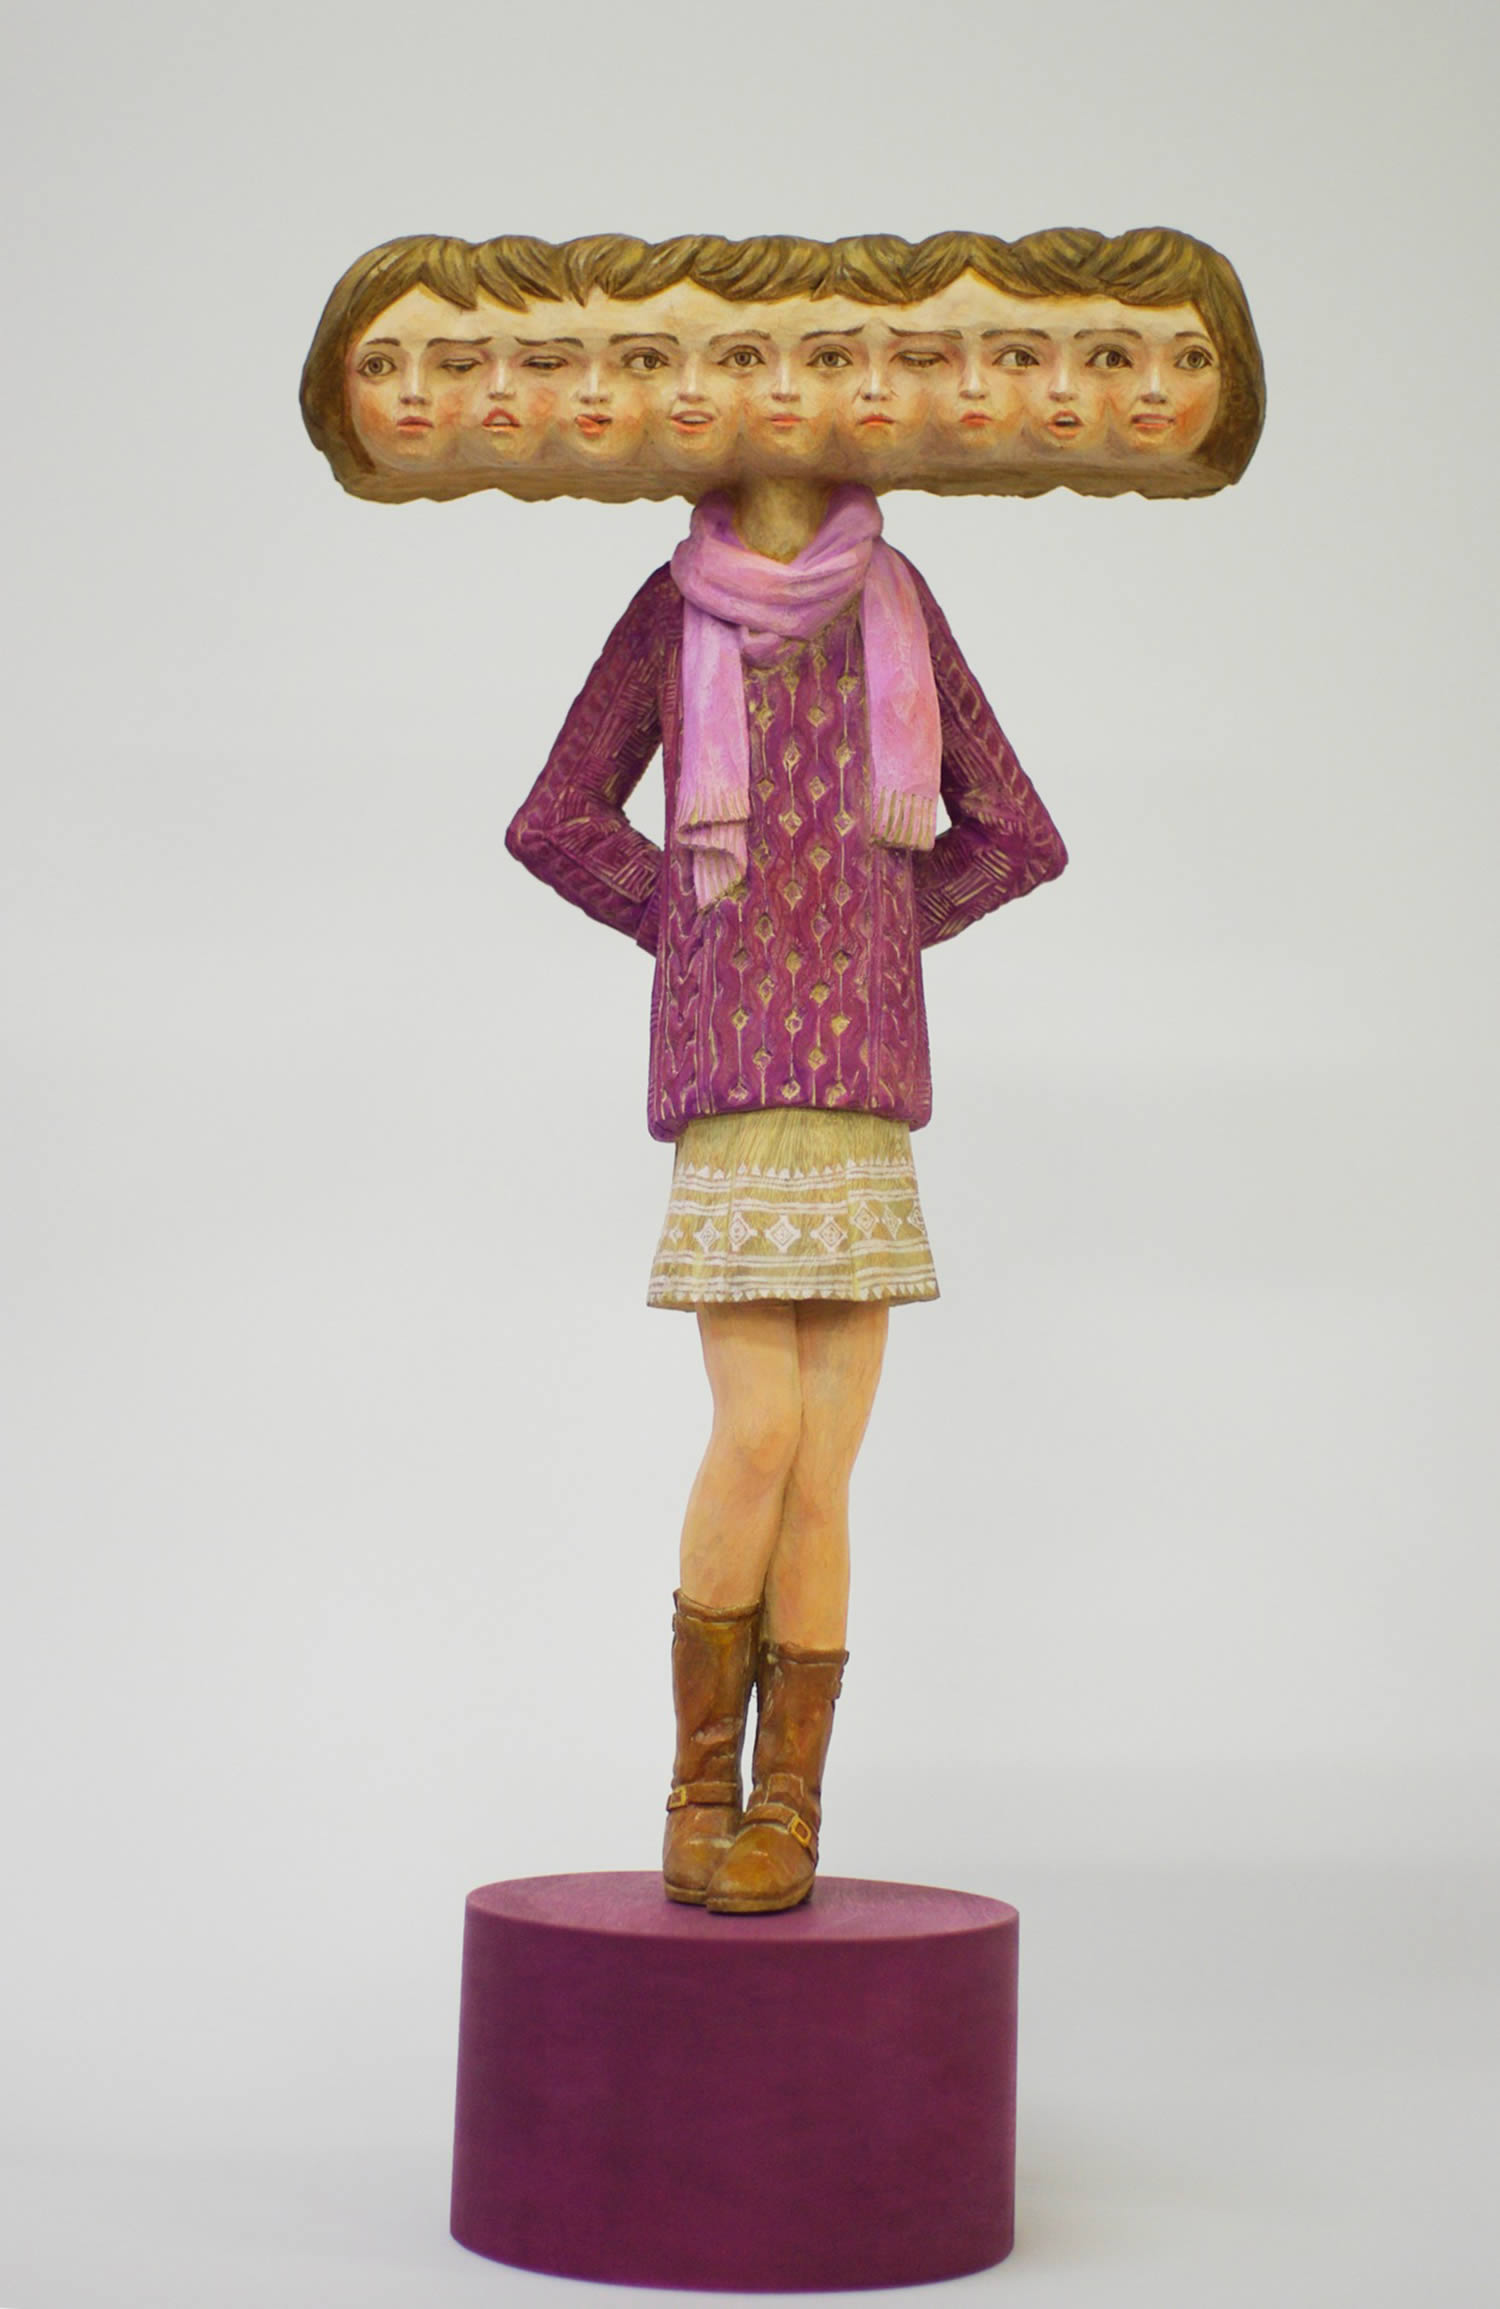 girl with big head, repeated heads sculpture